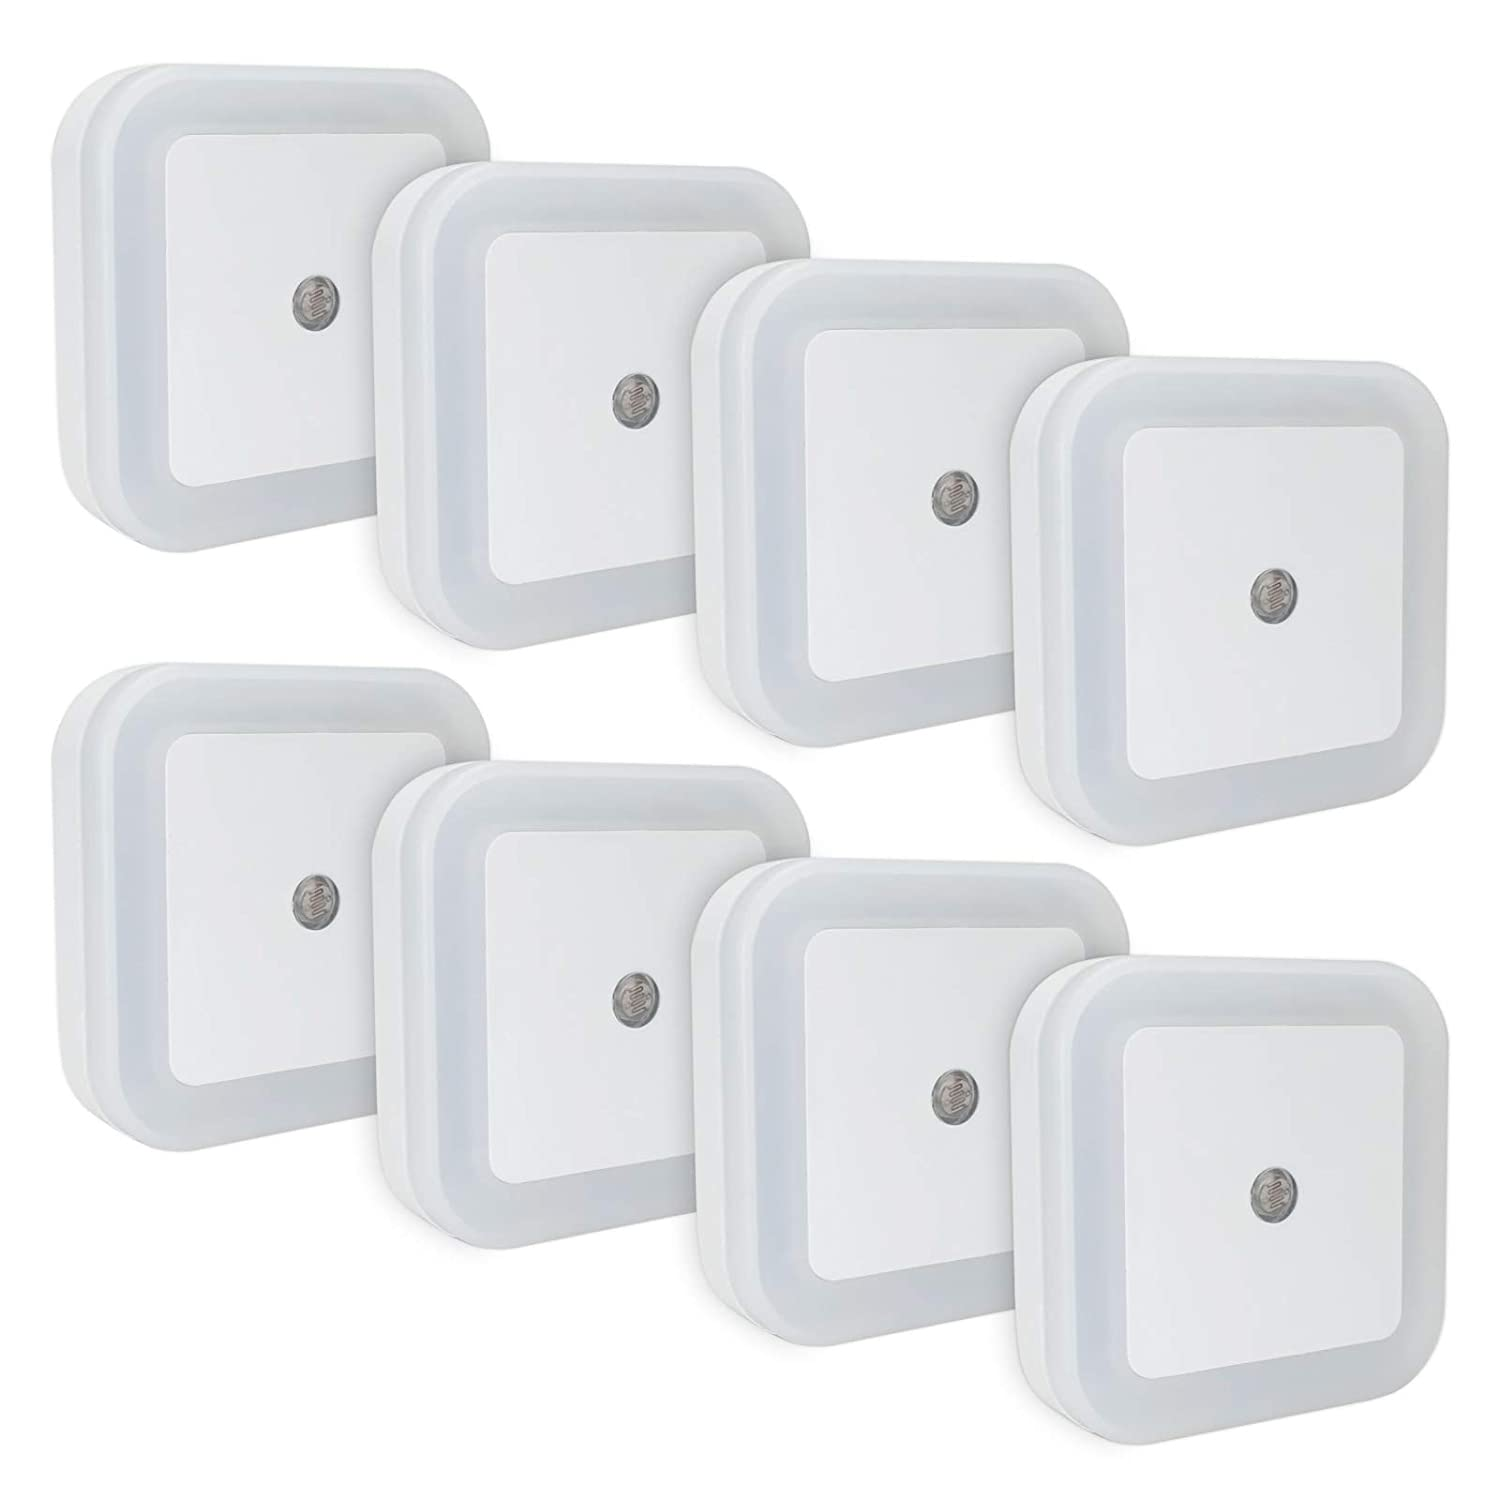 LINCO LED Plug Night Light Wall Lamp with Dusk to Smart Sensor LINCOInc SG/_B06XW4CNF4/_US Pack of 8 T001 8S